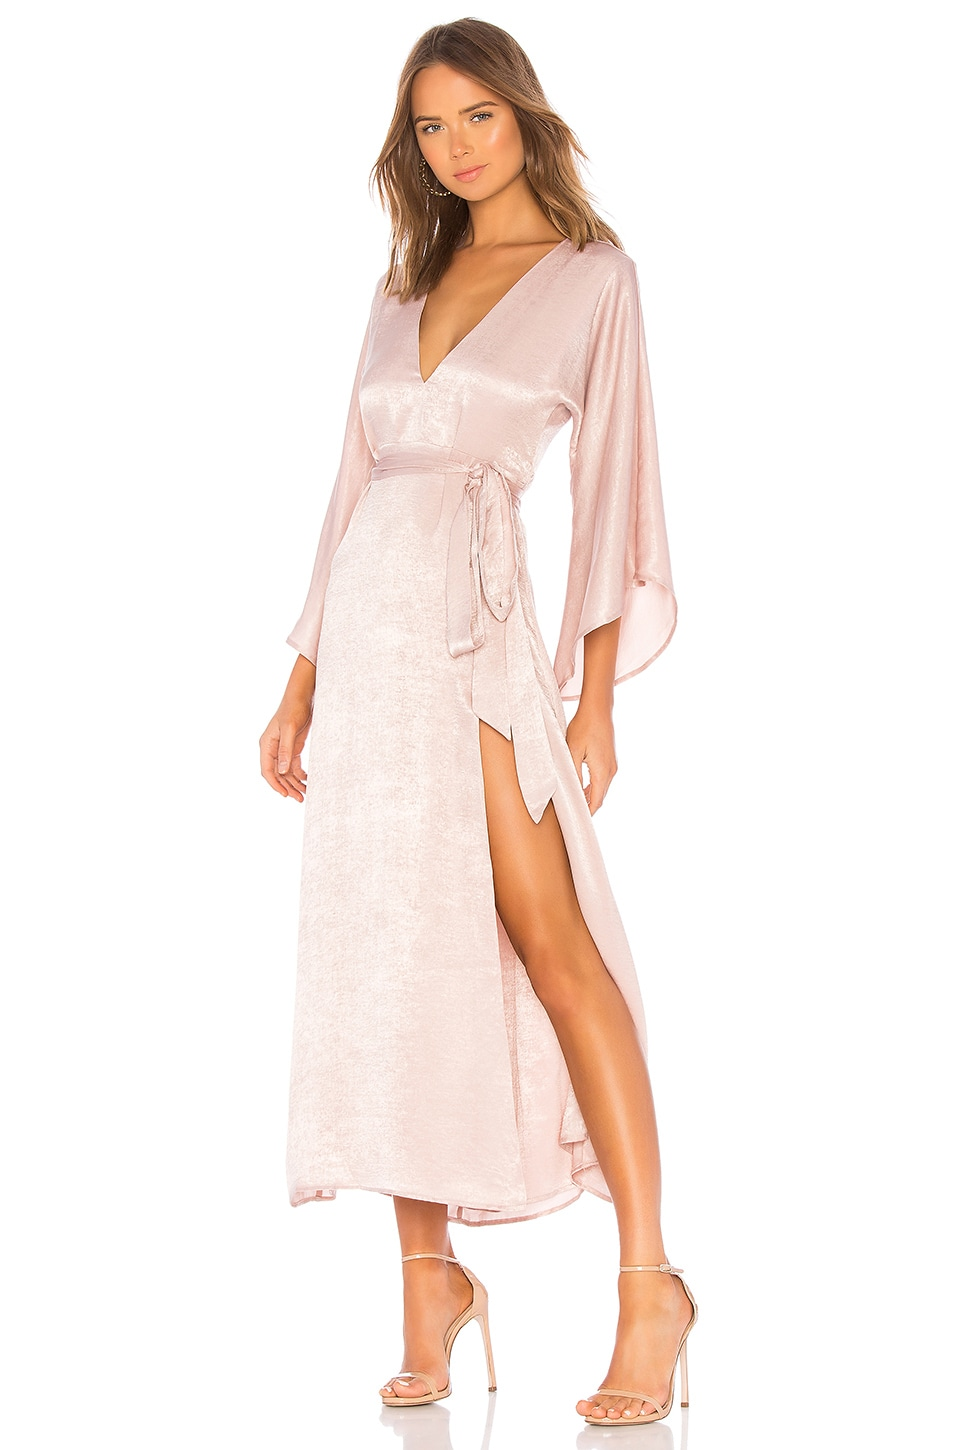 4c9125bf4d7 Cool Maxi Dresses - Buy Best Cool Maxi Dresses from Fashion Influencers